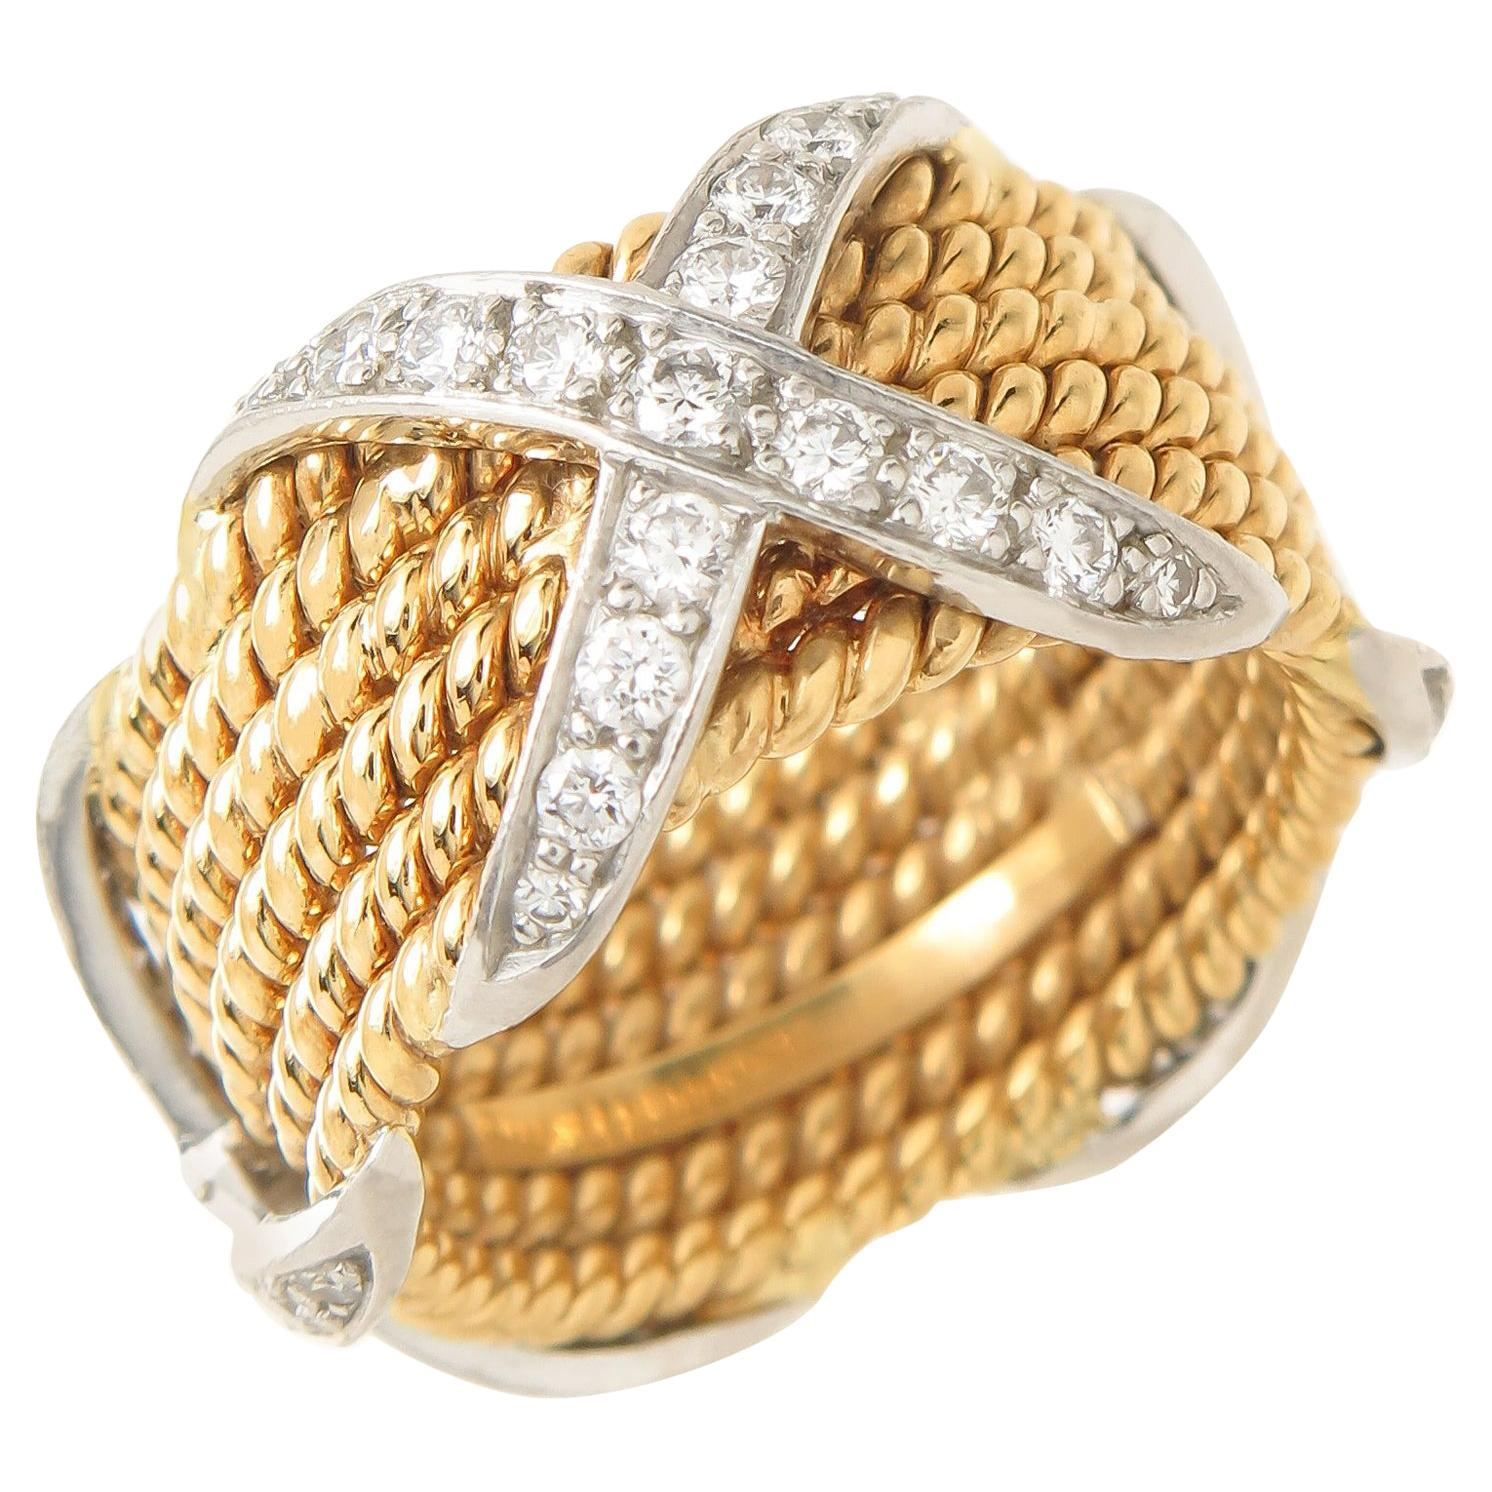 Tiffany & Company Jean Schlumberger Gold and Diamond Wide X Rope Band Ring